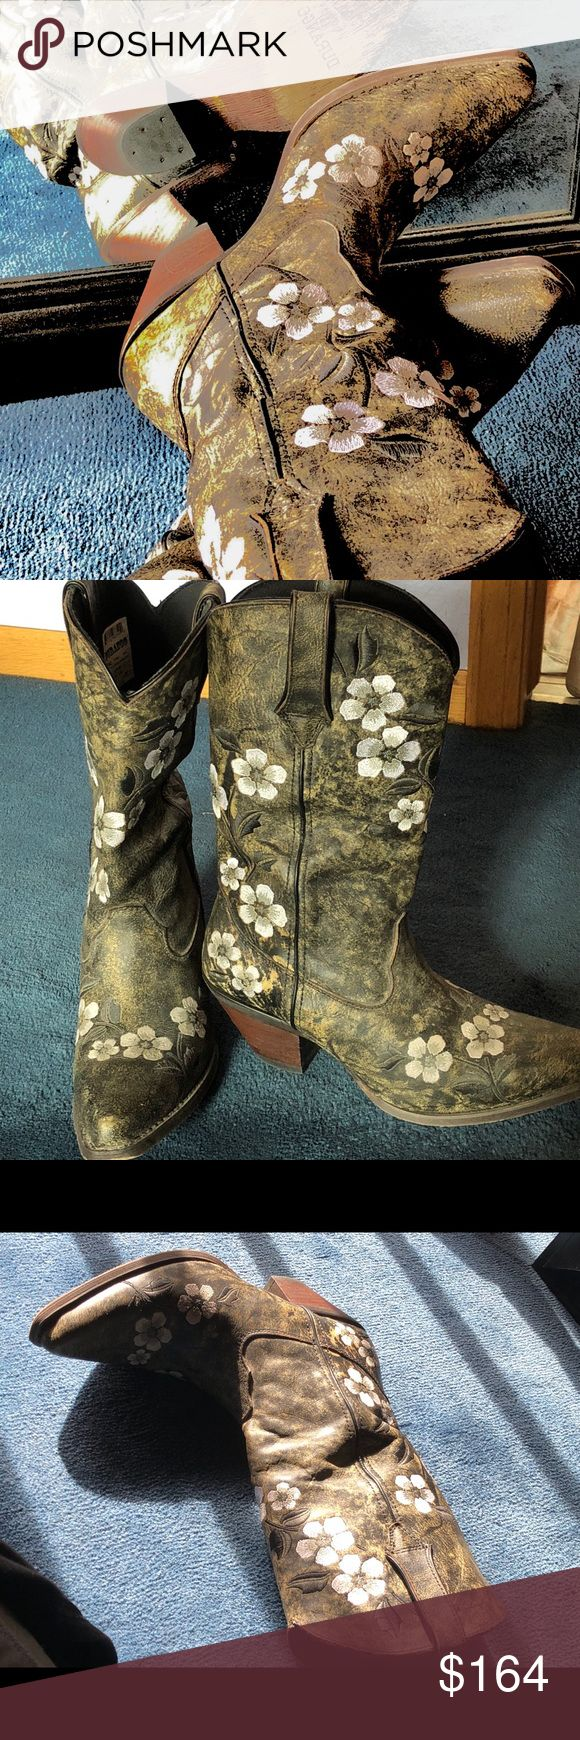 ‼️Cool, unique, DURANGO LEATHER BOOTS FLORAL INSET ‼️DURANGO AMAZING, EYE CATCHING JUST  A COOL PAIR OF BOOTS YOU WILL GET STOPPED & asked about or complimented. The shaft is leather with a unique color combo of marbled brown, sliver, black & grey. I wore one time & played up the silver in the boot with accessories. They are a 7/5 & true to size. A padded comfy foot bed heel is about 2.45 the toe is more of a square toe VS pointed  or round  I prefer square which is my look in boots. I wear…